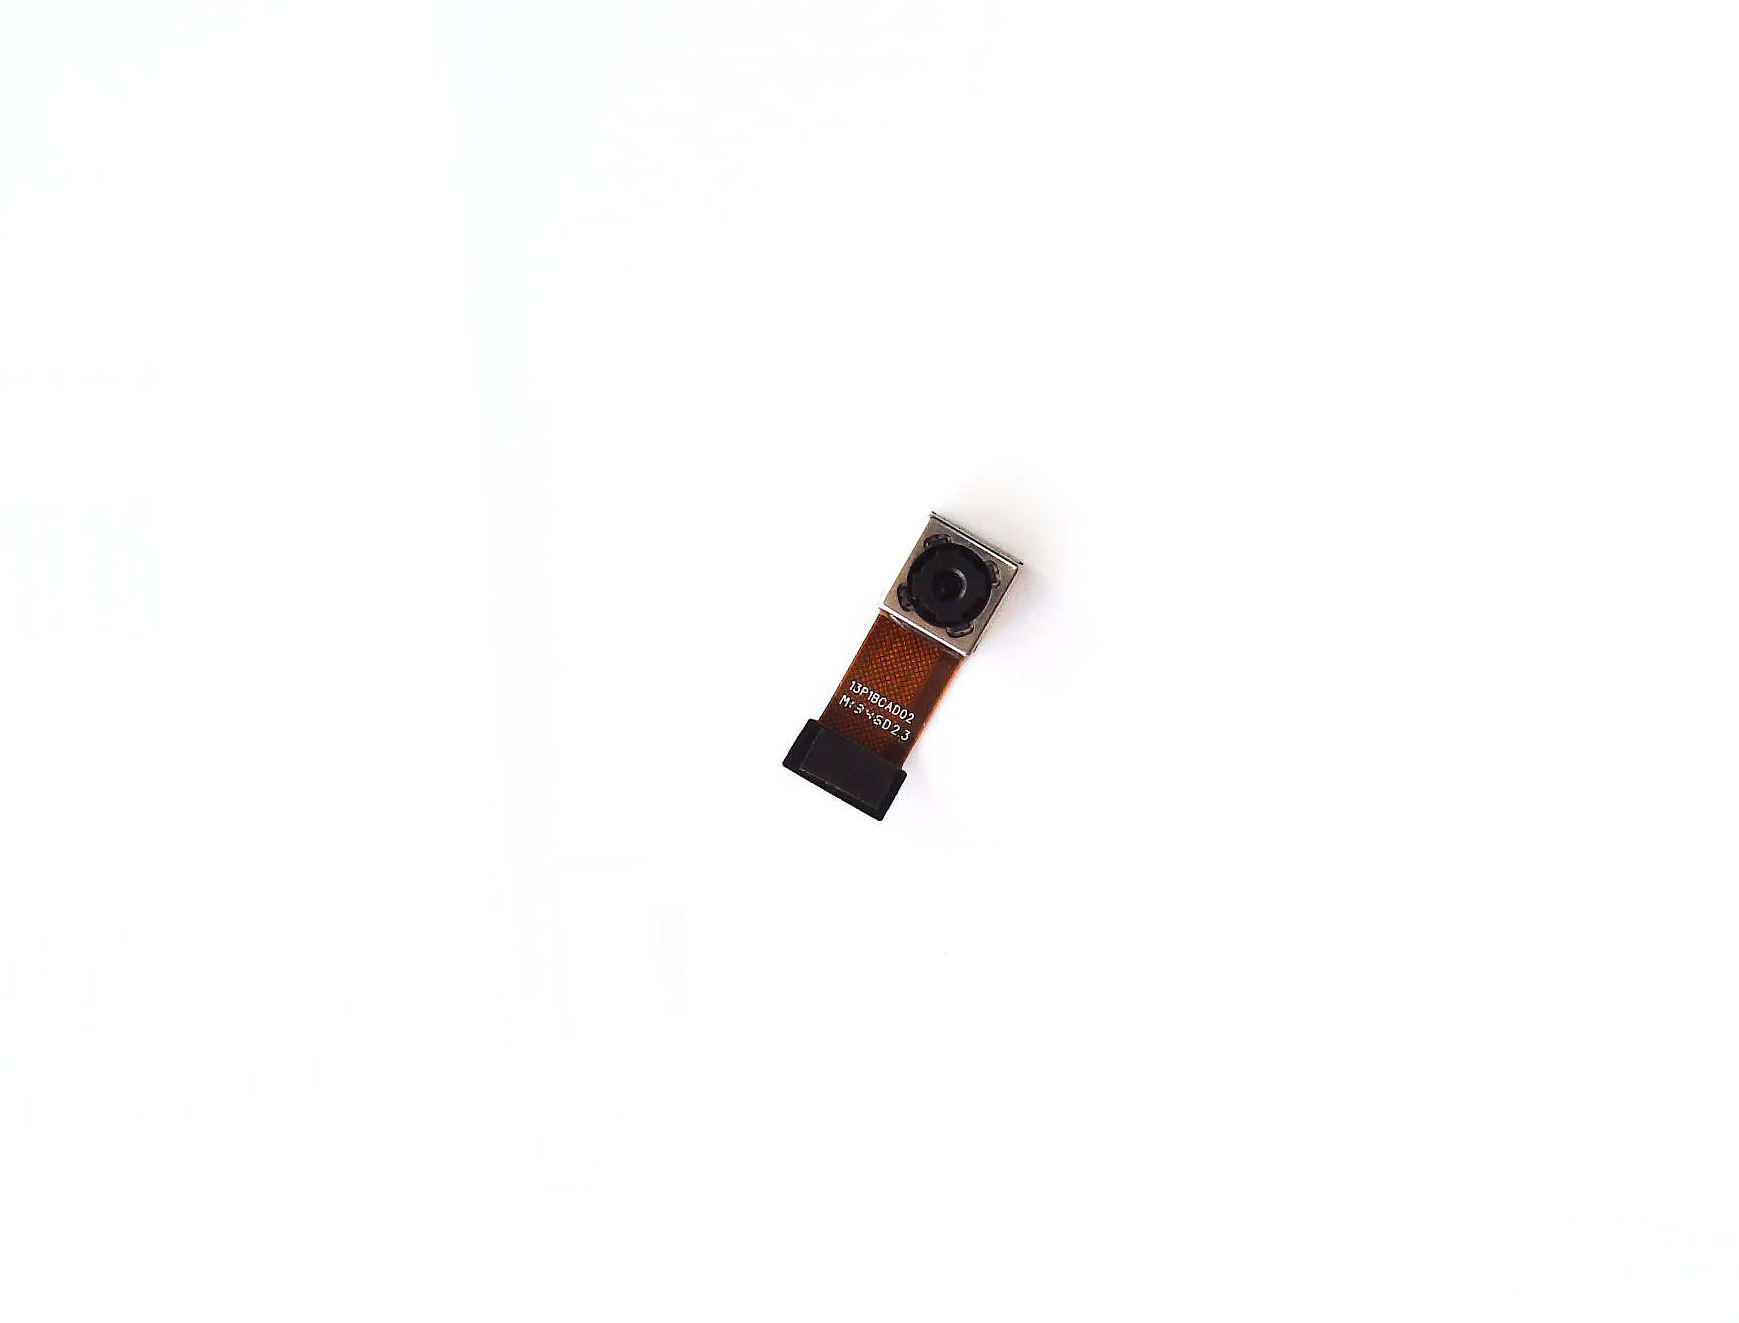 Repair Parts Photo Camera Module Replacement for <font><b>Lenovo</b></font> <font><b>S960</b></font> S968t Cellphone image